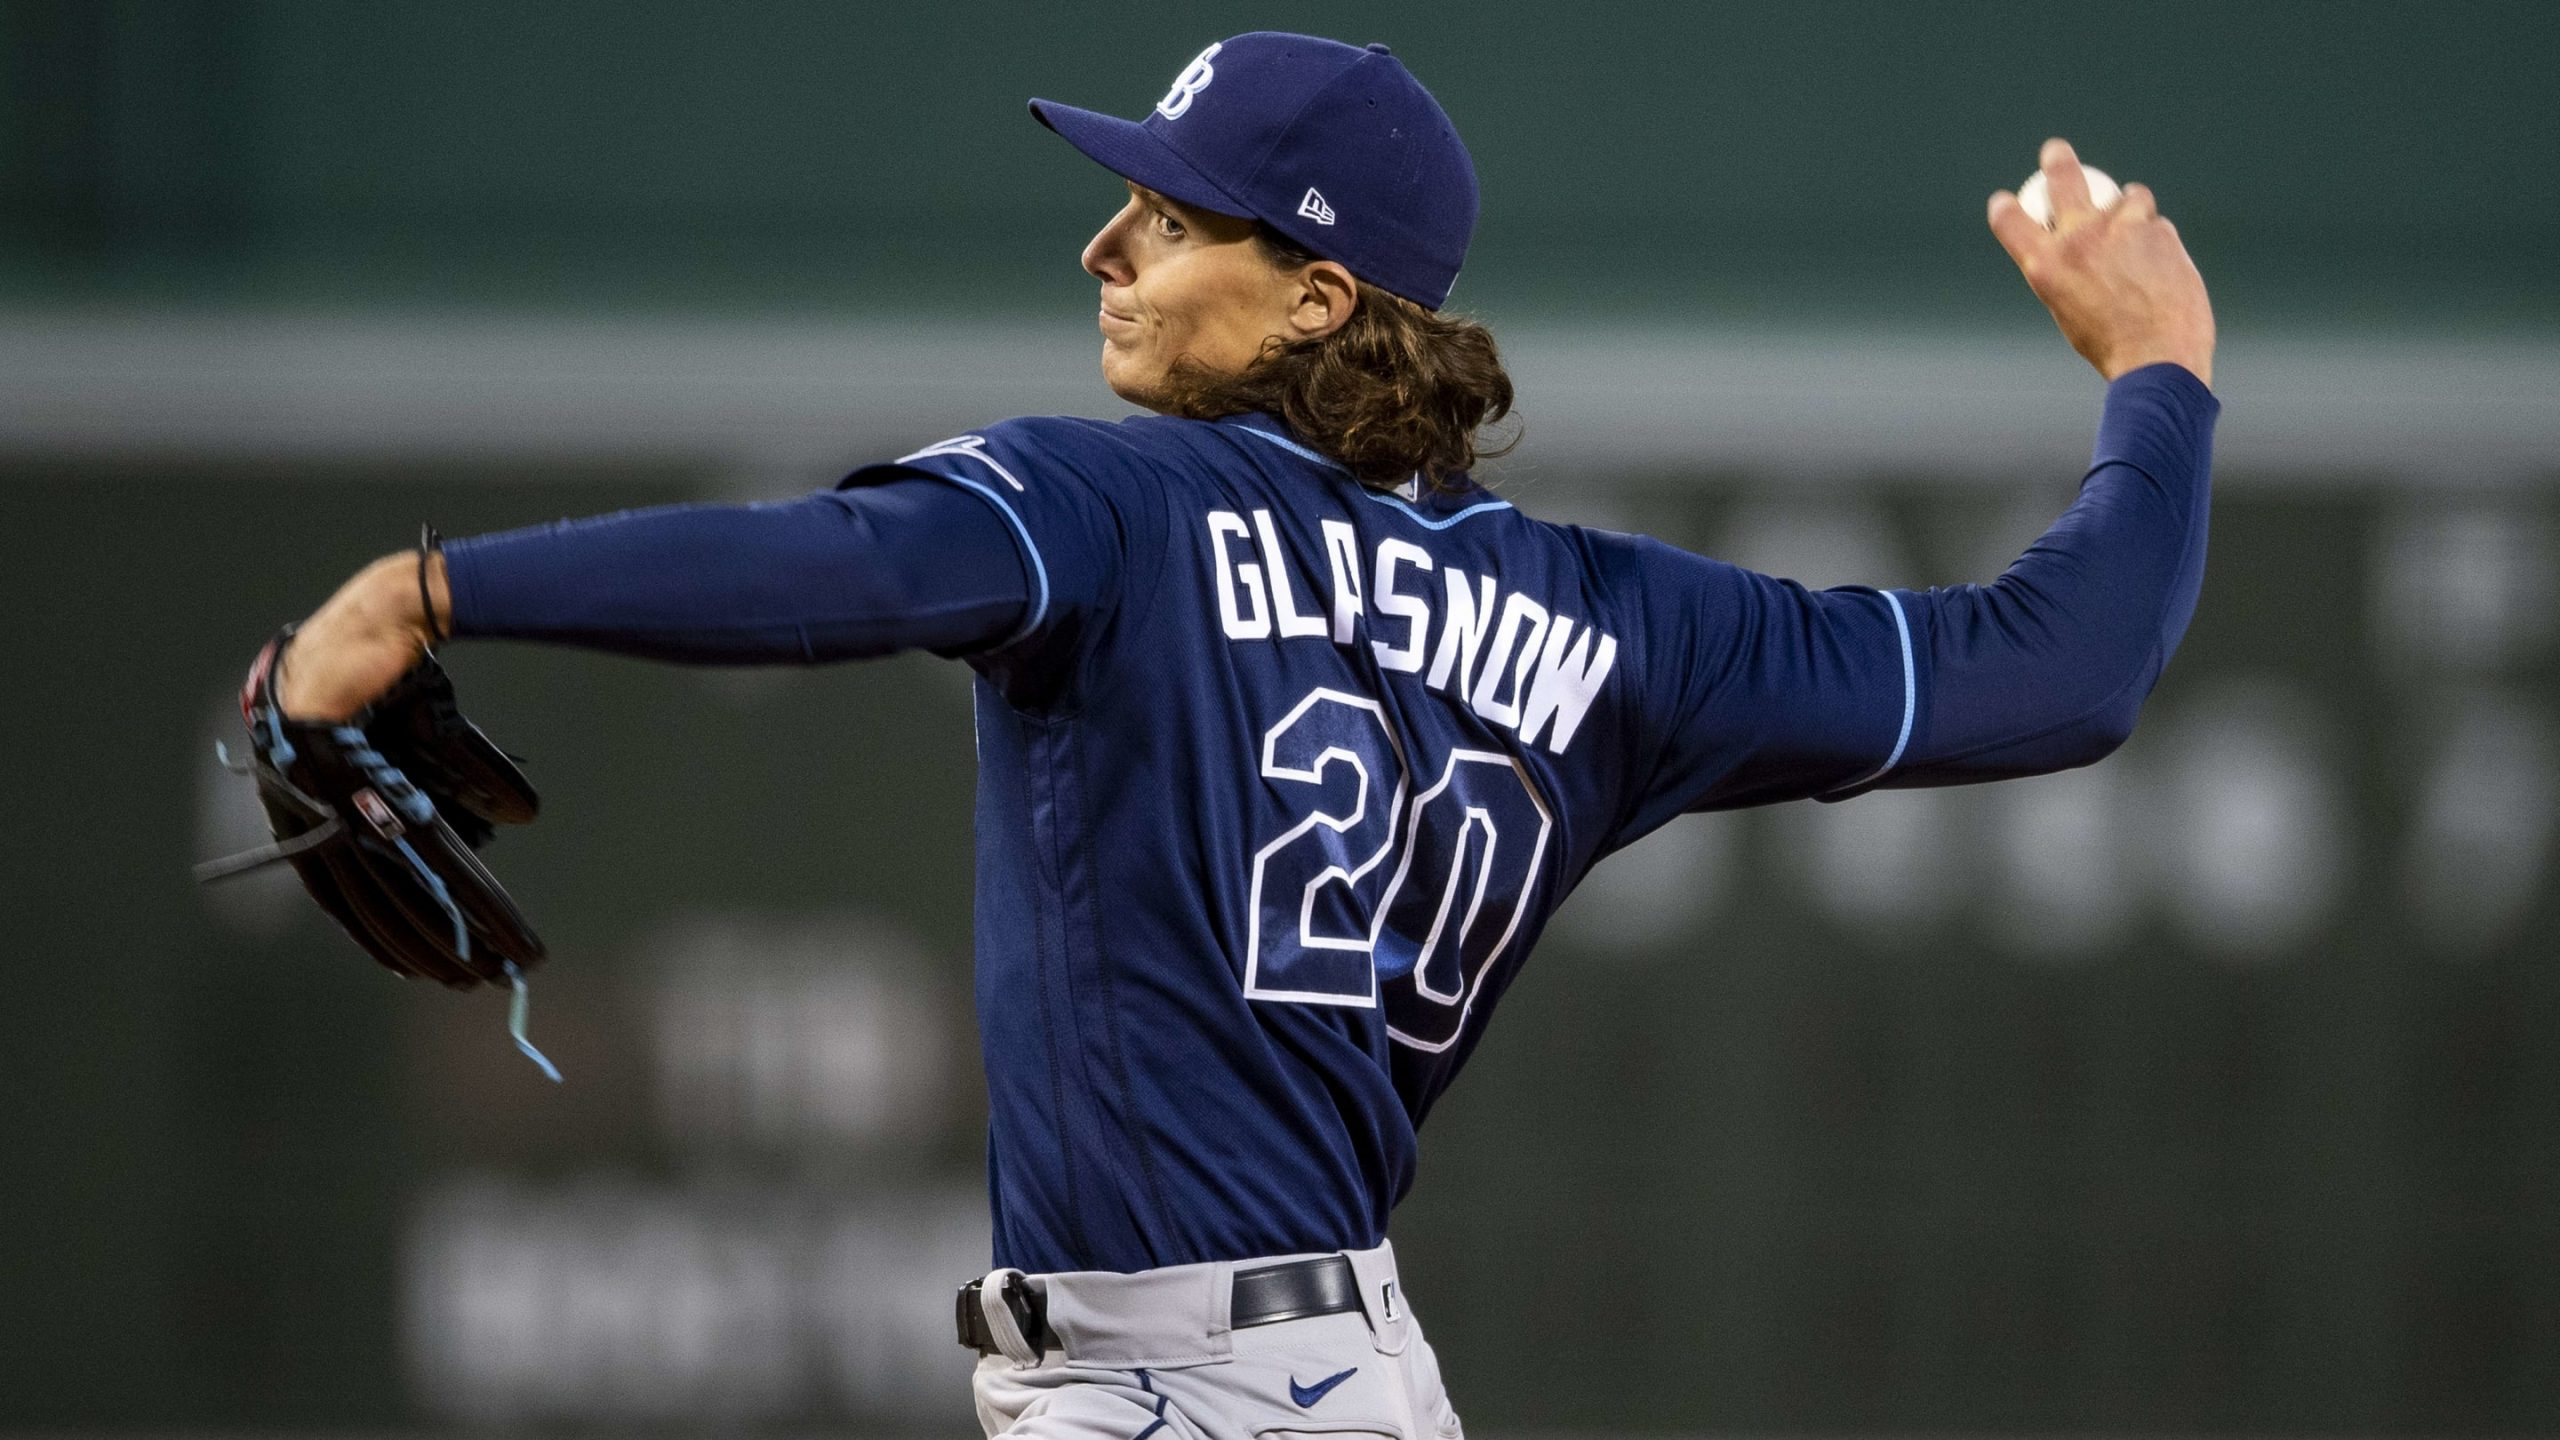 mlb experts betting this wednesday (june 9) afternoon game